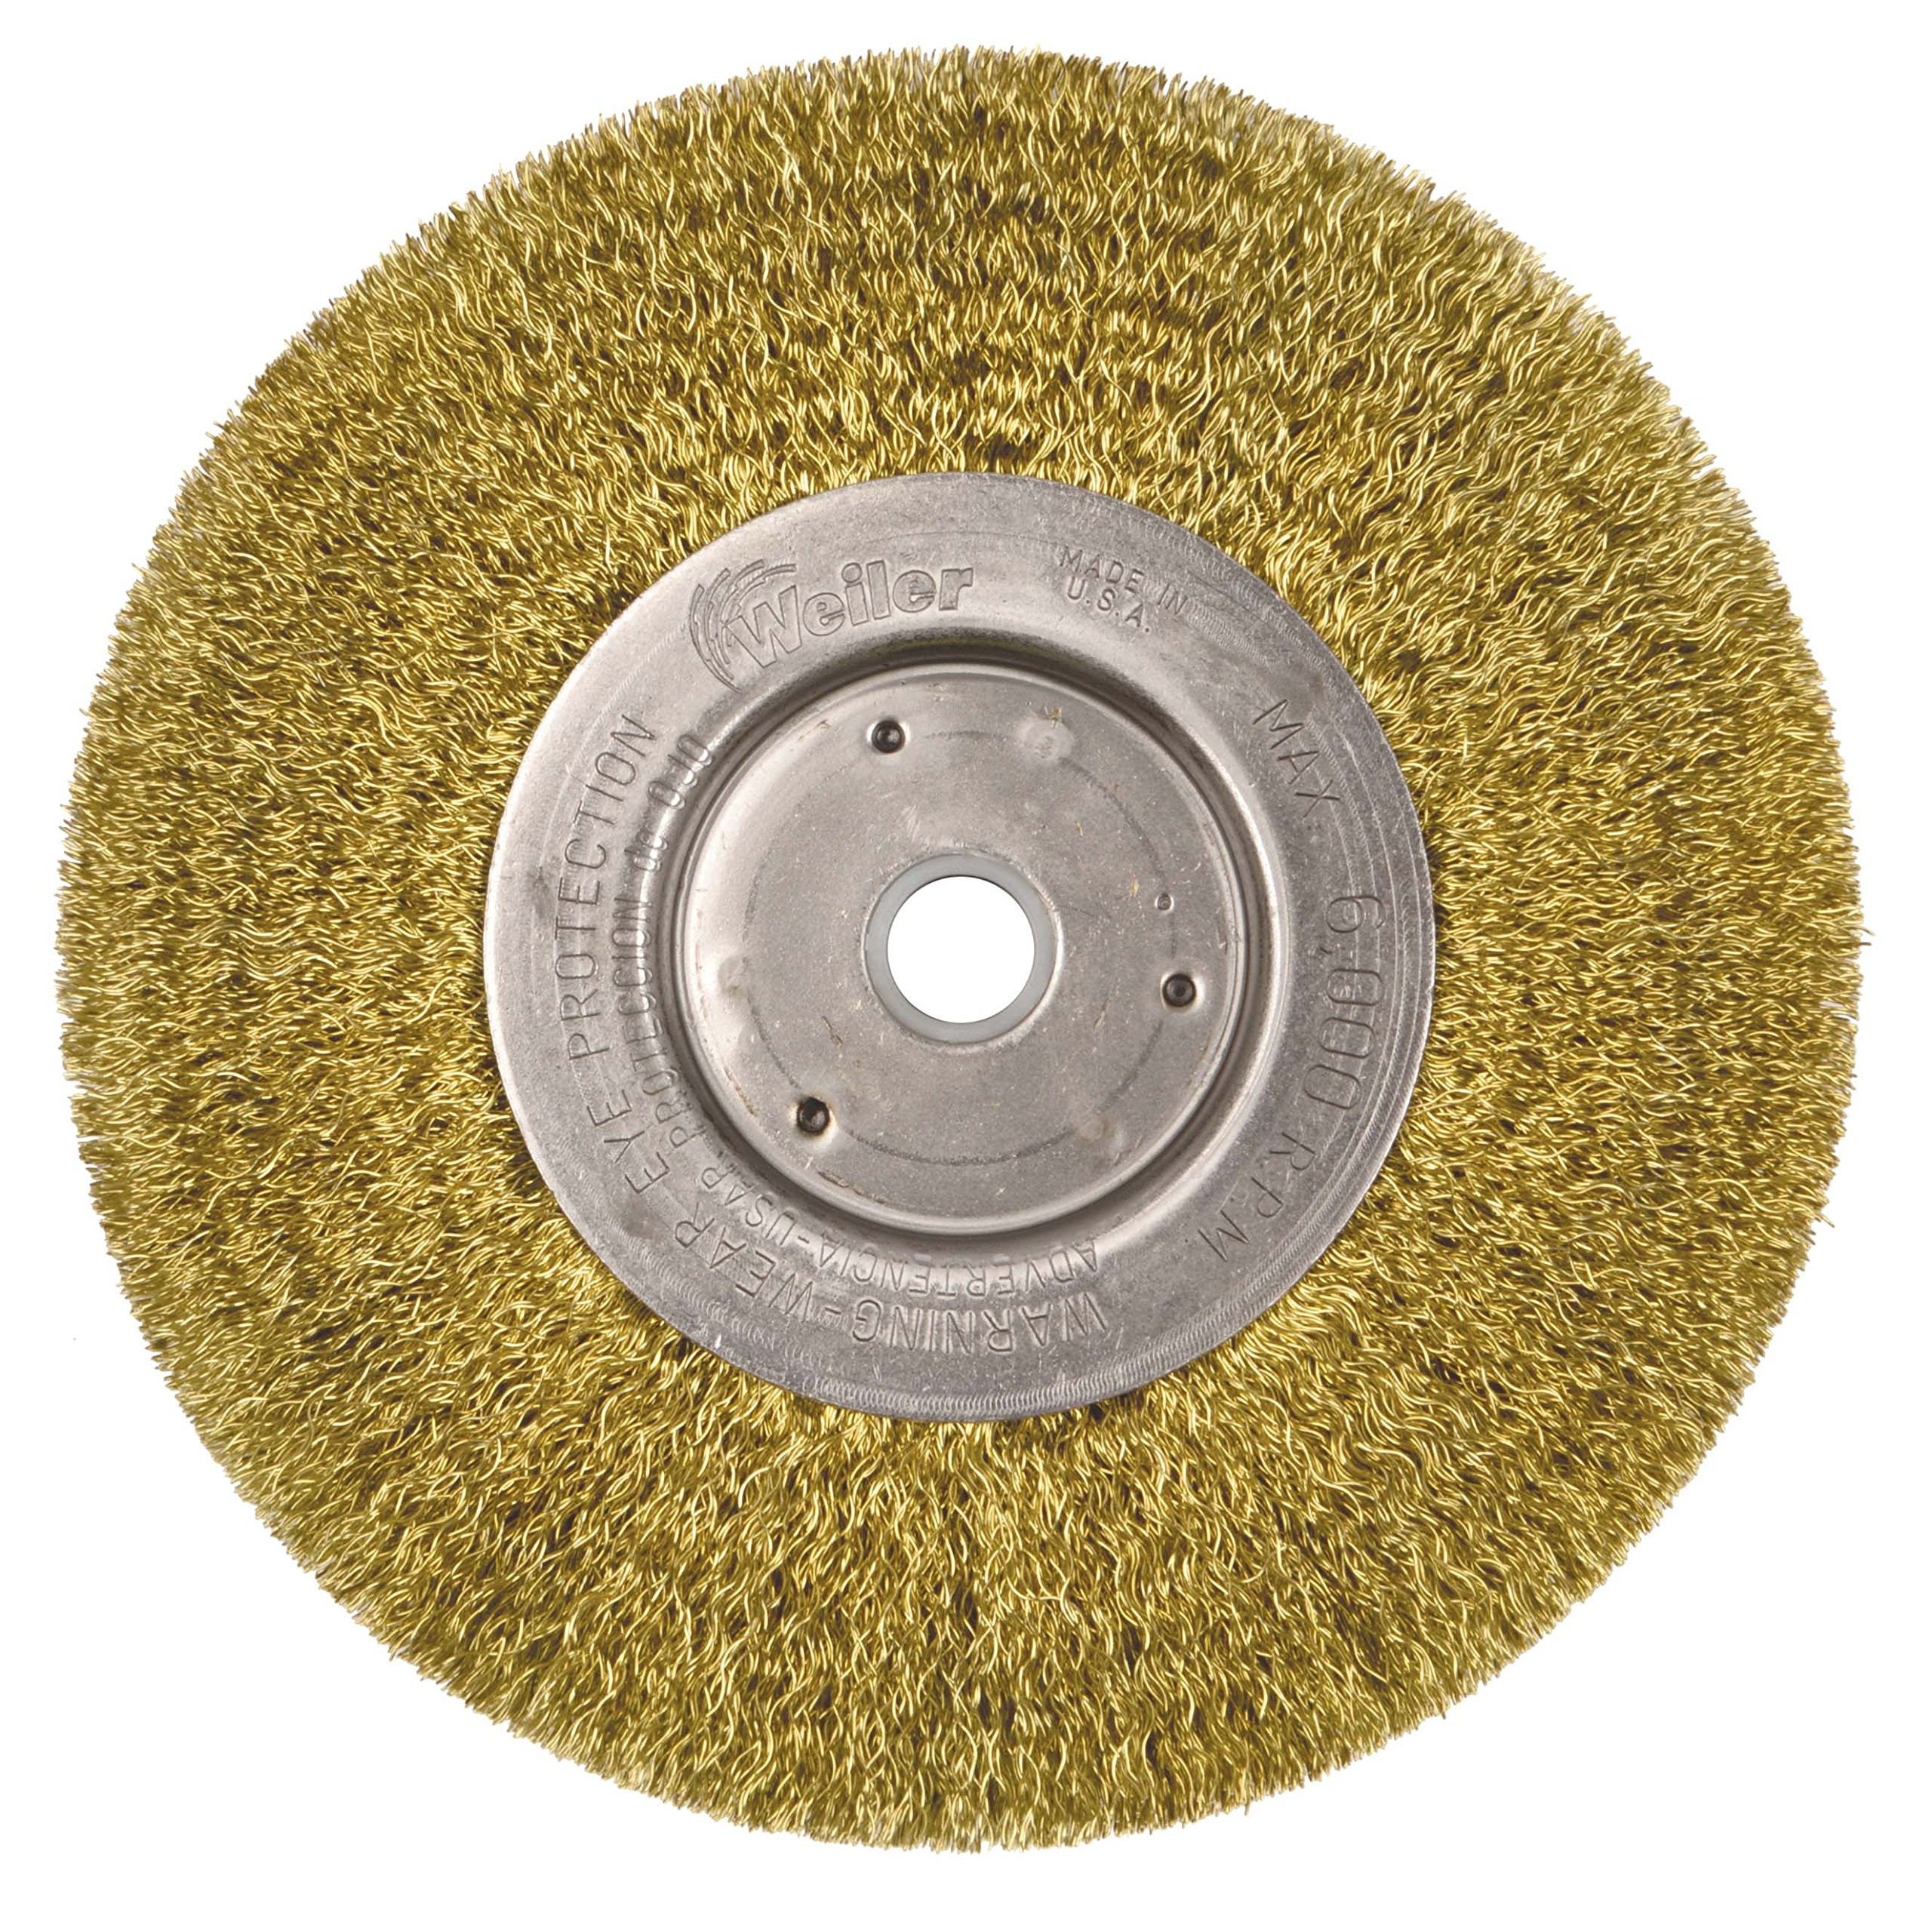 Weiler 1475 Narrow Face Crimped Wire Wheel, 6'', 0.118'' Brass Fill, 5/8''-1/2'' Arbor Hole (Pack of 2)